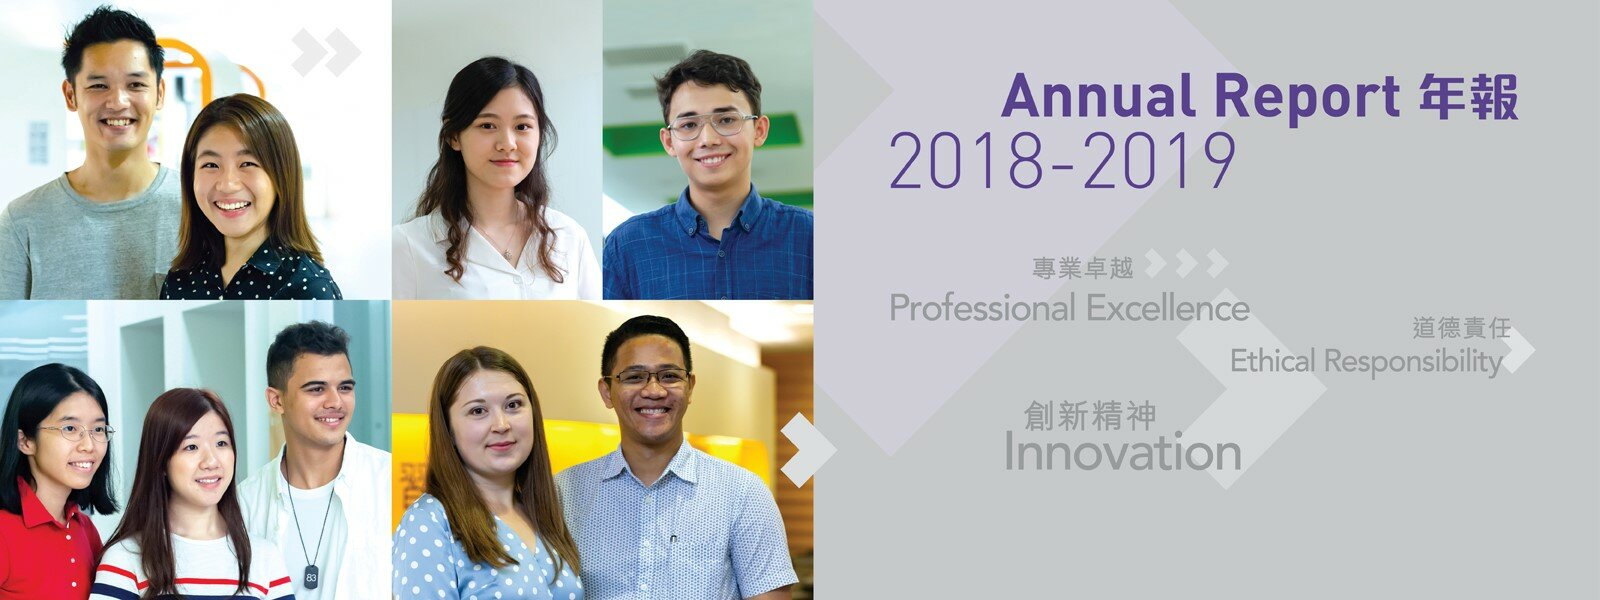 Annual Report年報 2018-2019